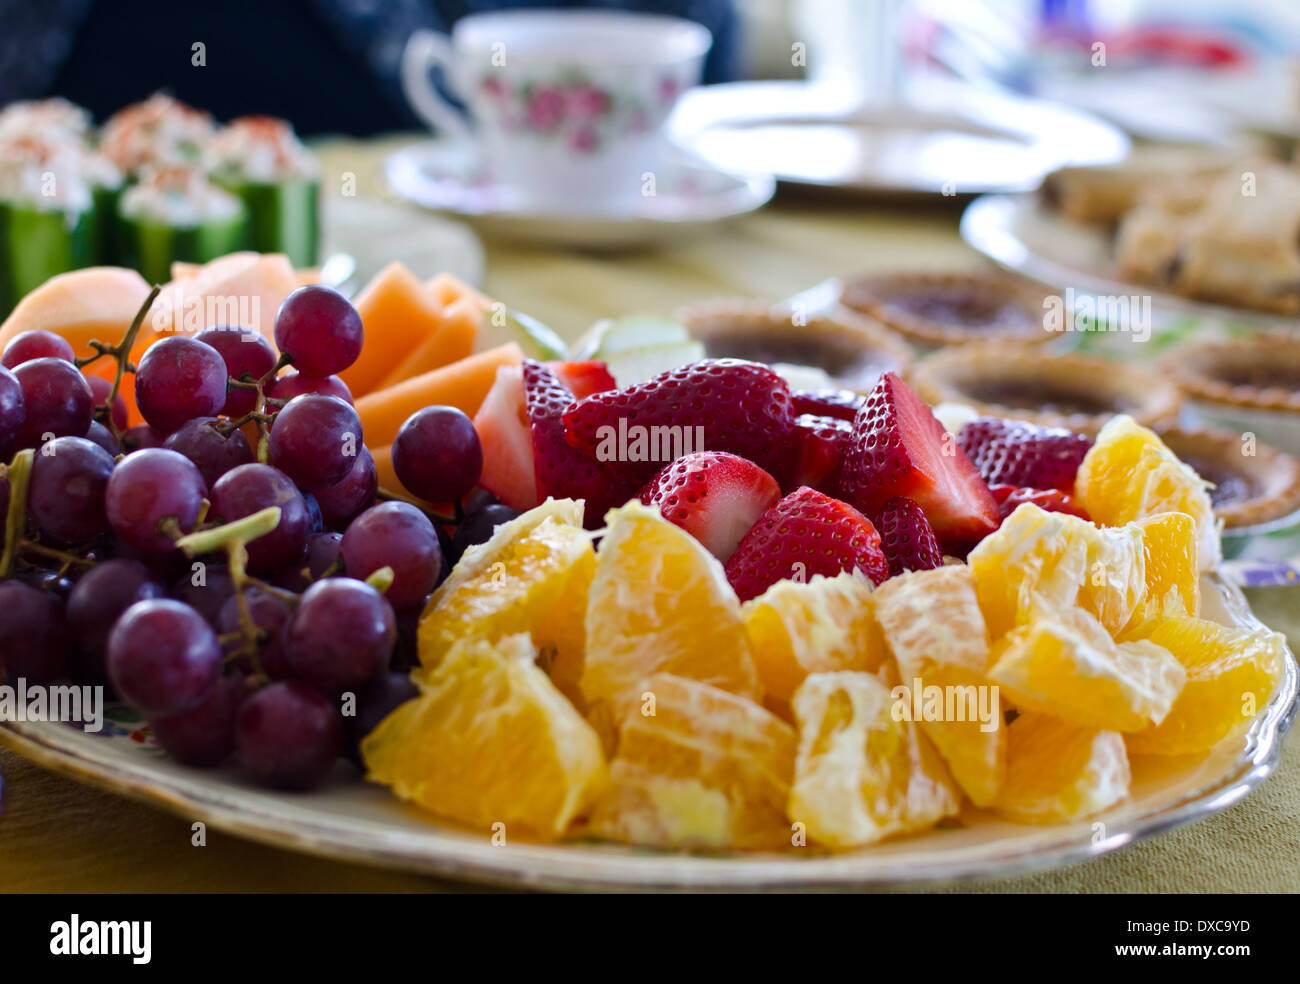 Plate of cut up fruit -oranges, grapes, strawberries and cantaloupe ...